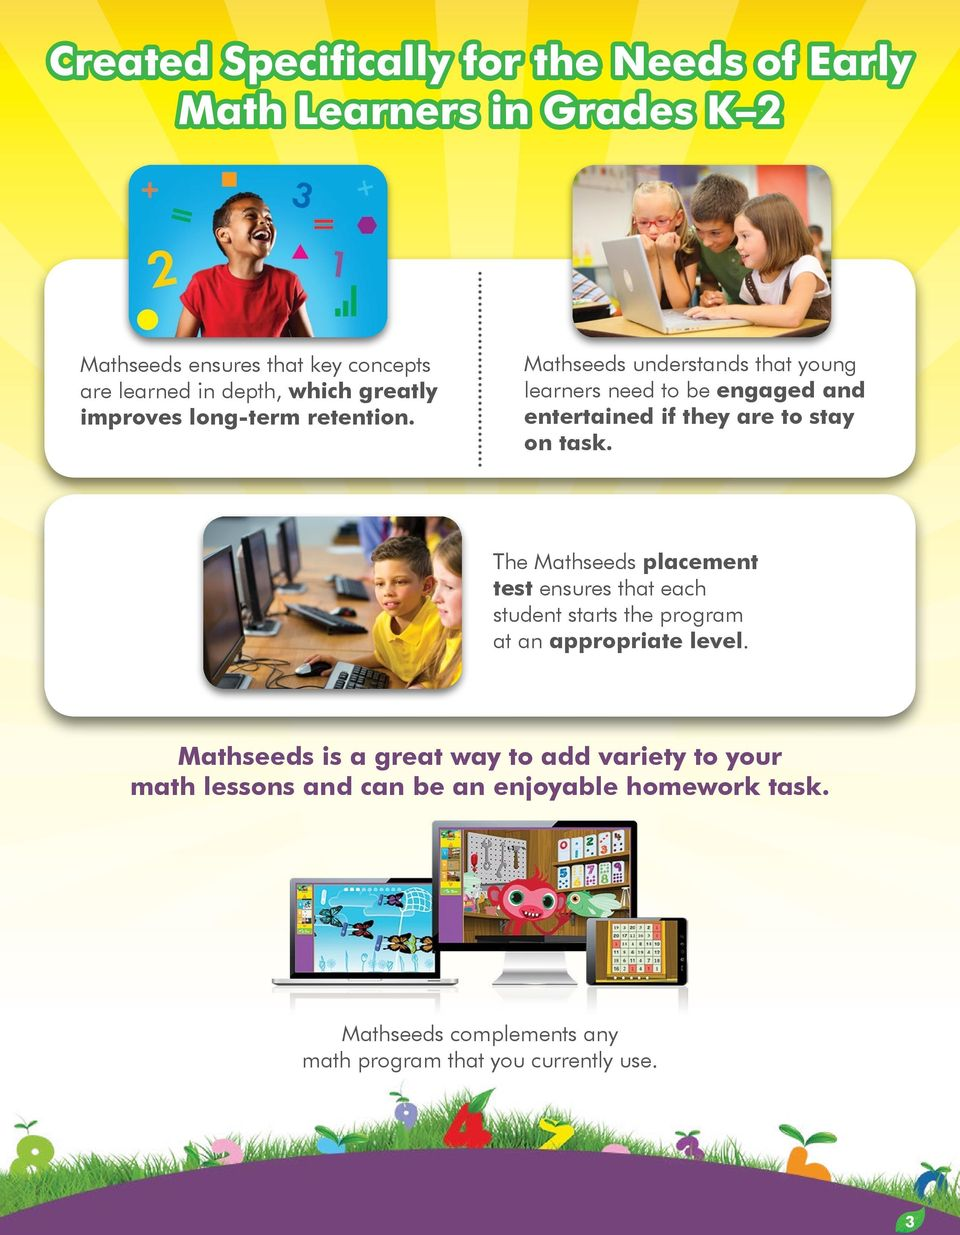 Mathseeds understands that young learners need to be engaged and entertained if they are to stay on task.